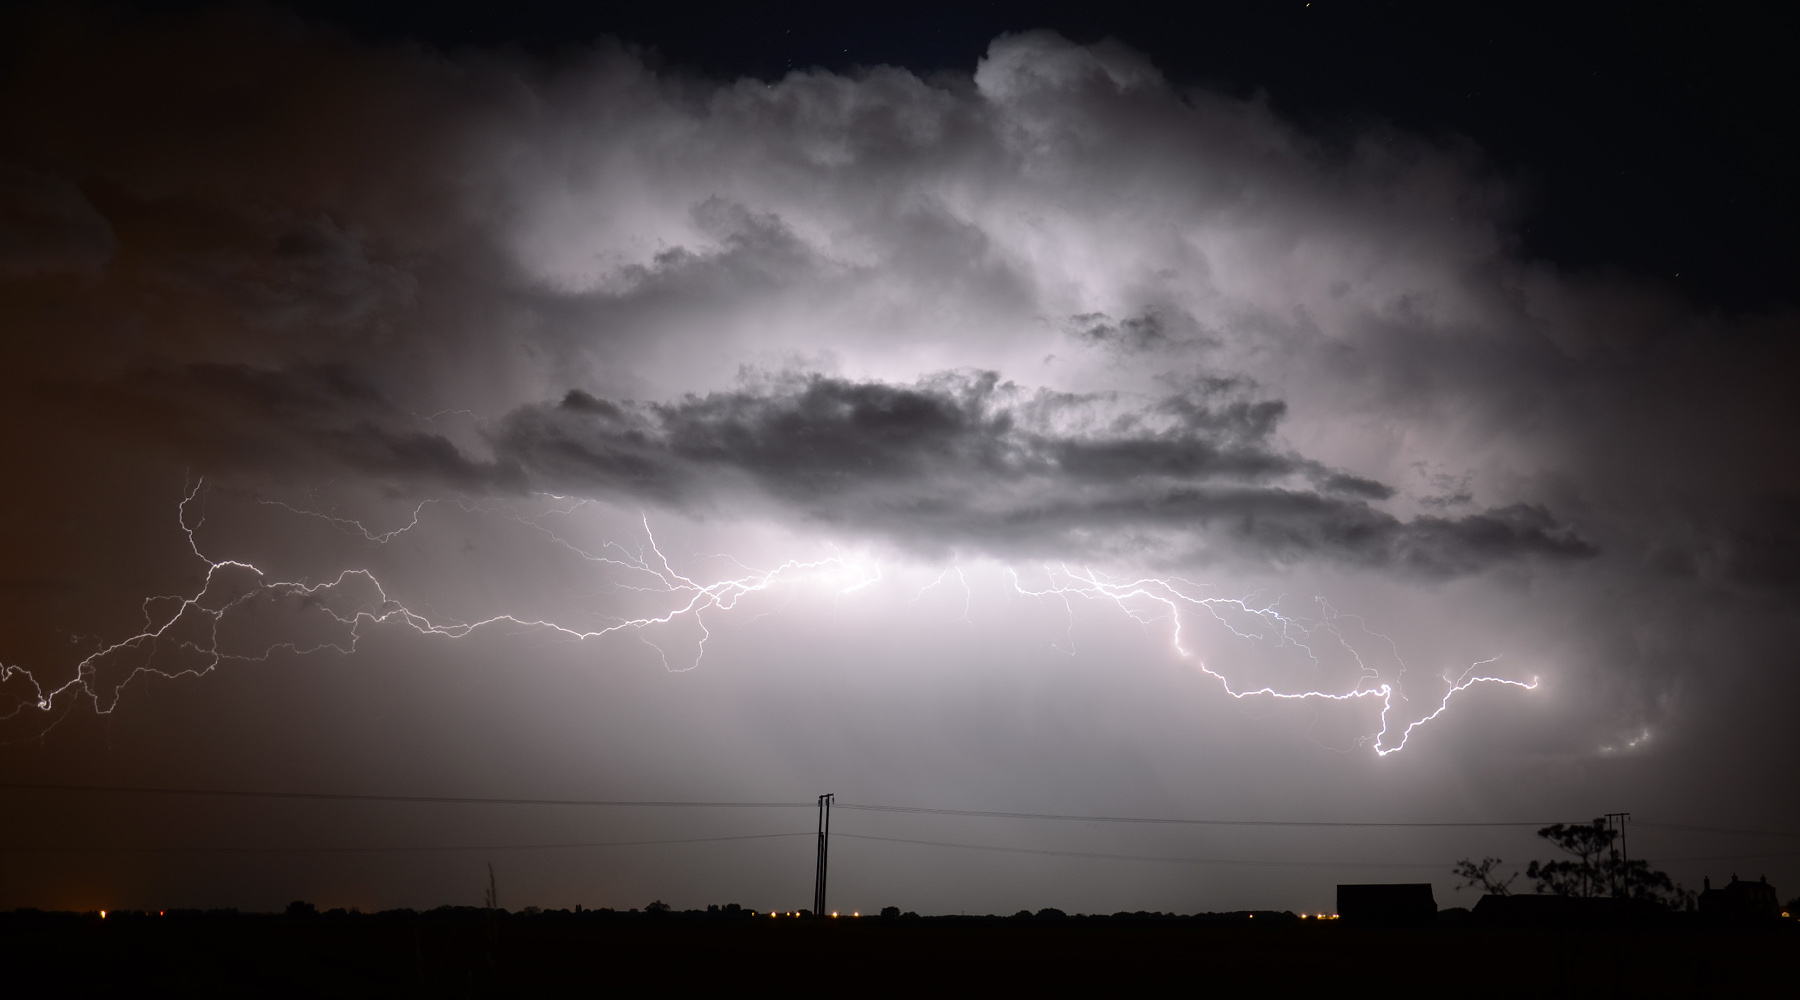 lightning storm selby north yorkshire